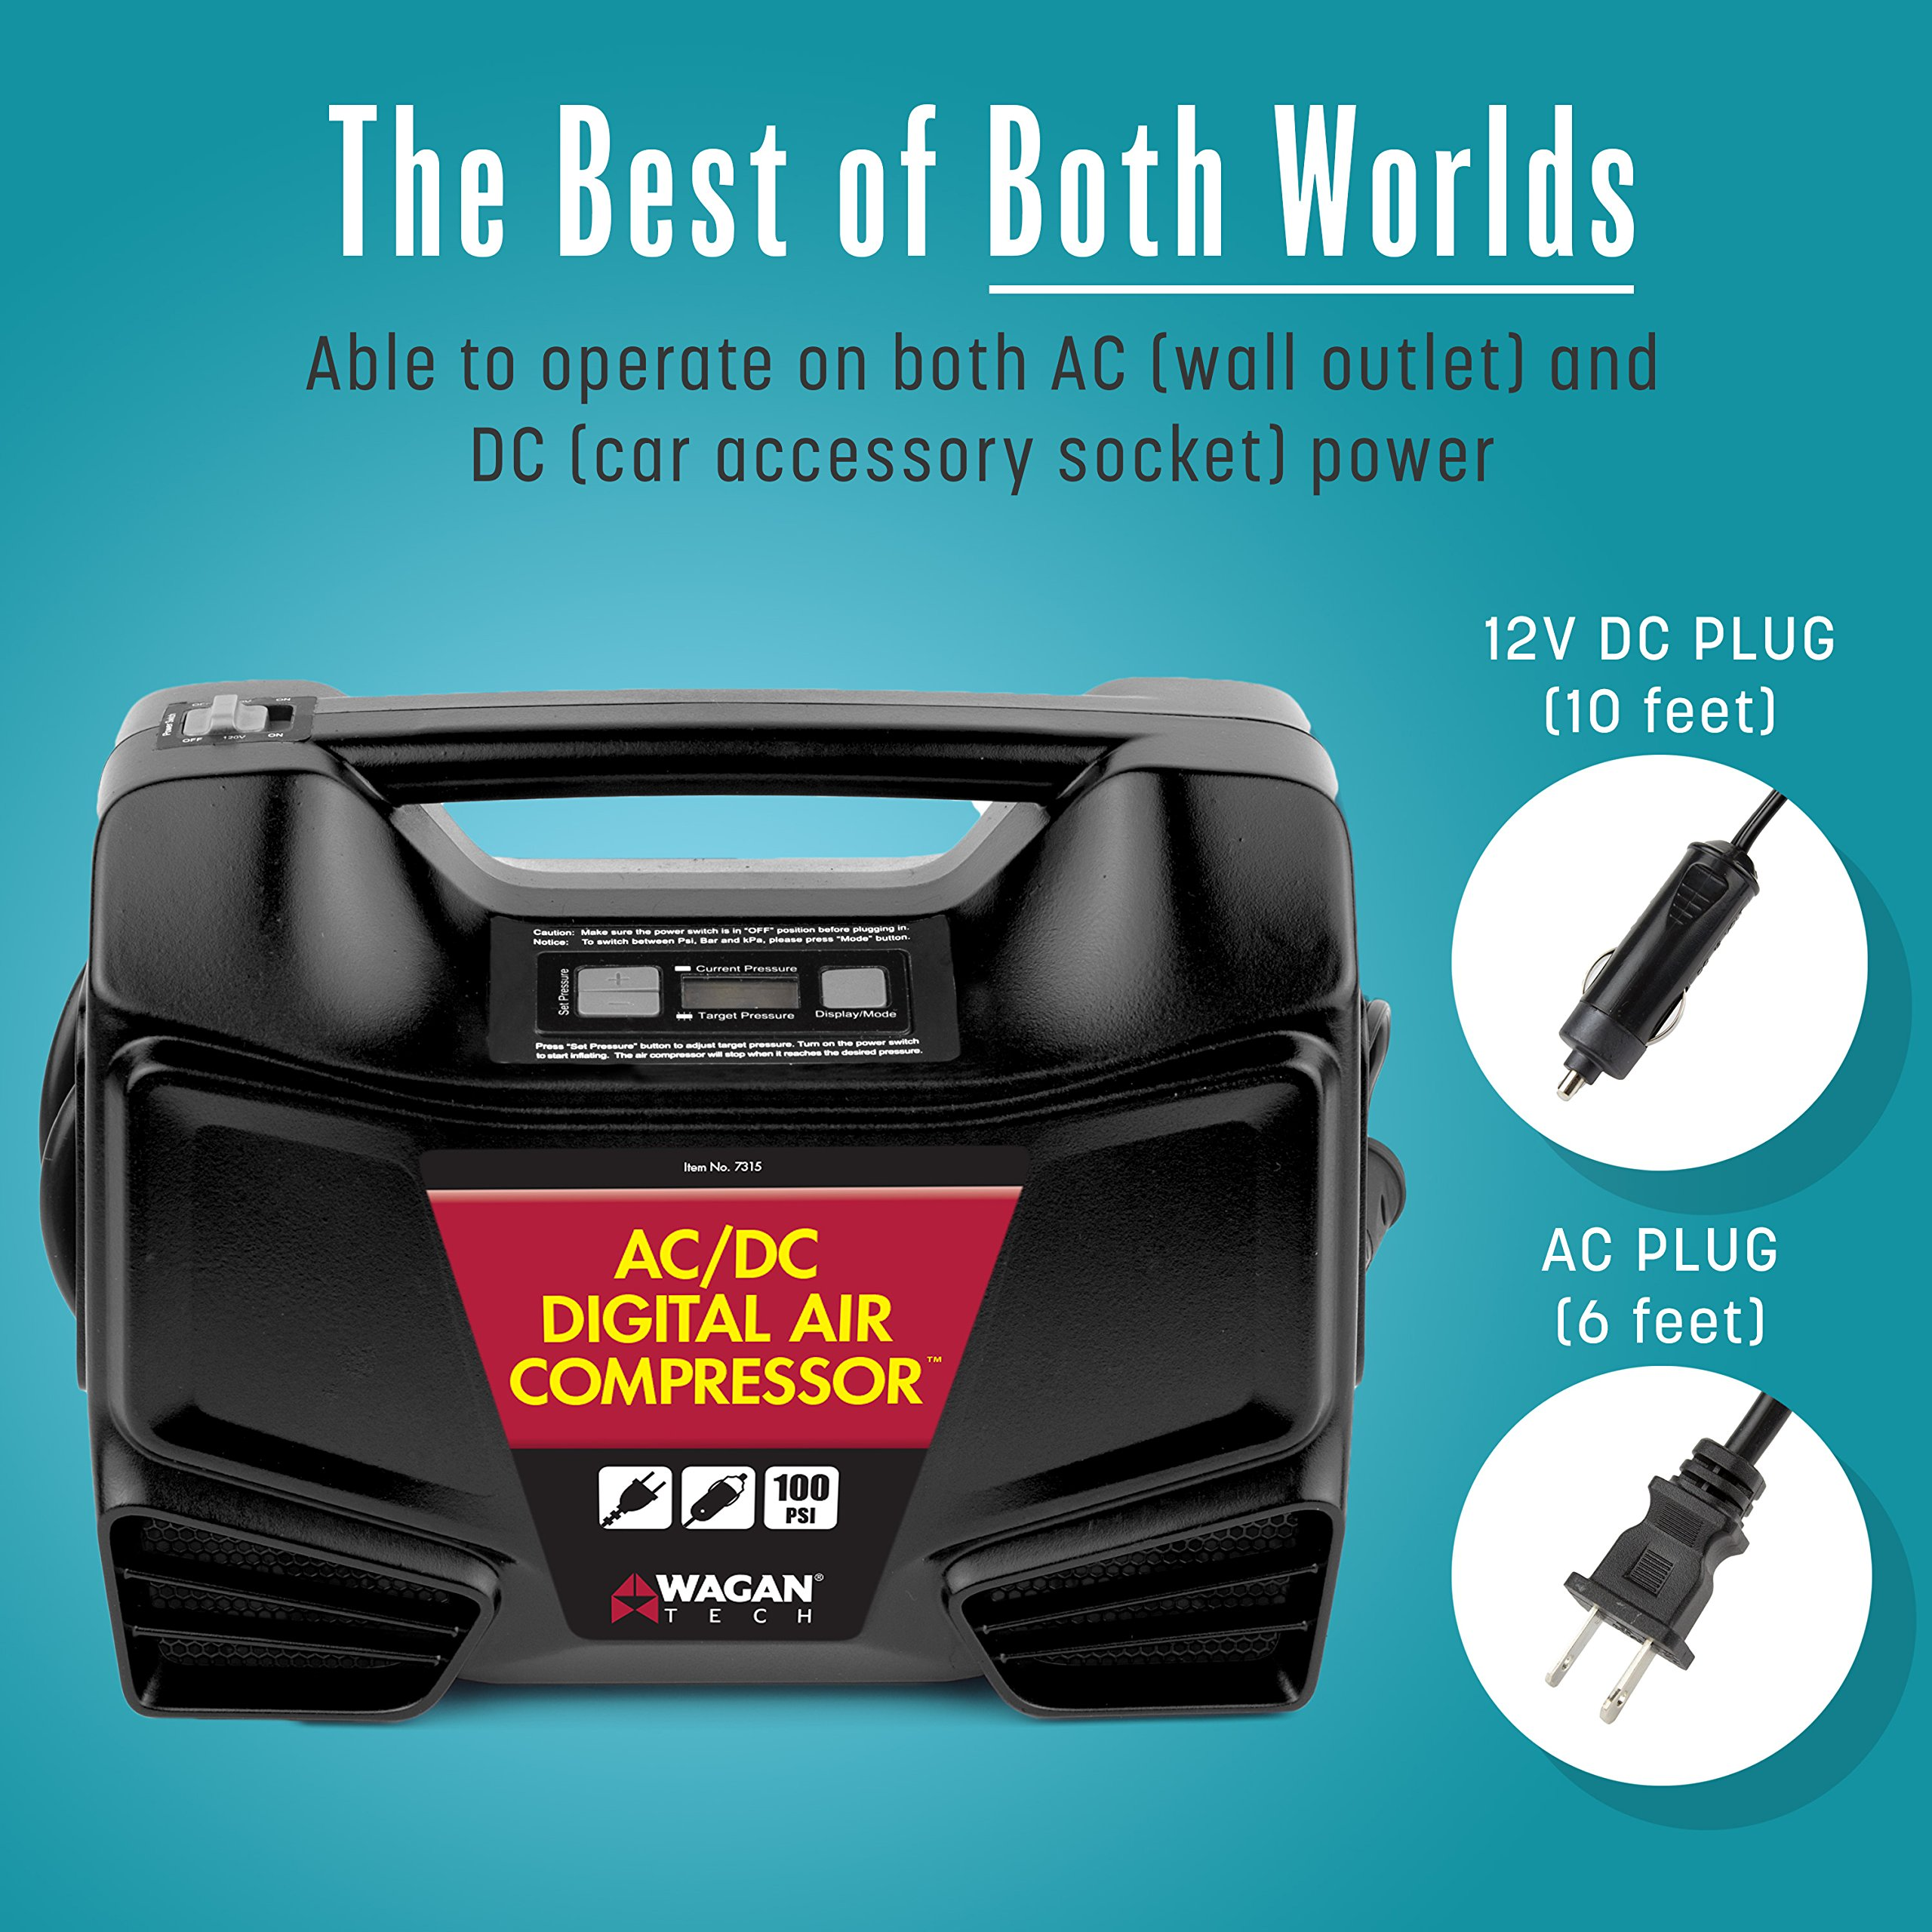 Wagan Digital Display Dual AC/DC 110V/12V Air Compressor Tire Inflator with Nozzle Adapters for Vehicle Outdoor and Home Indoor Use by Wagan (Image #2)